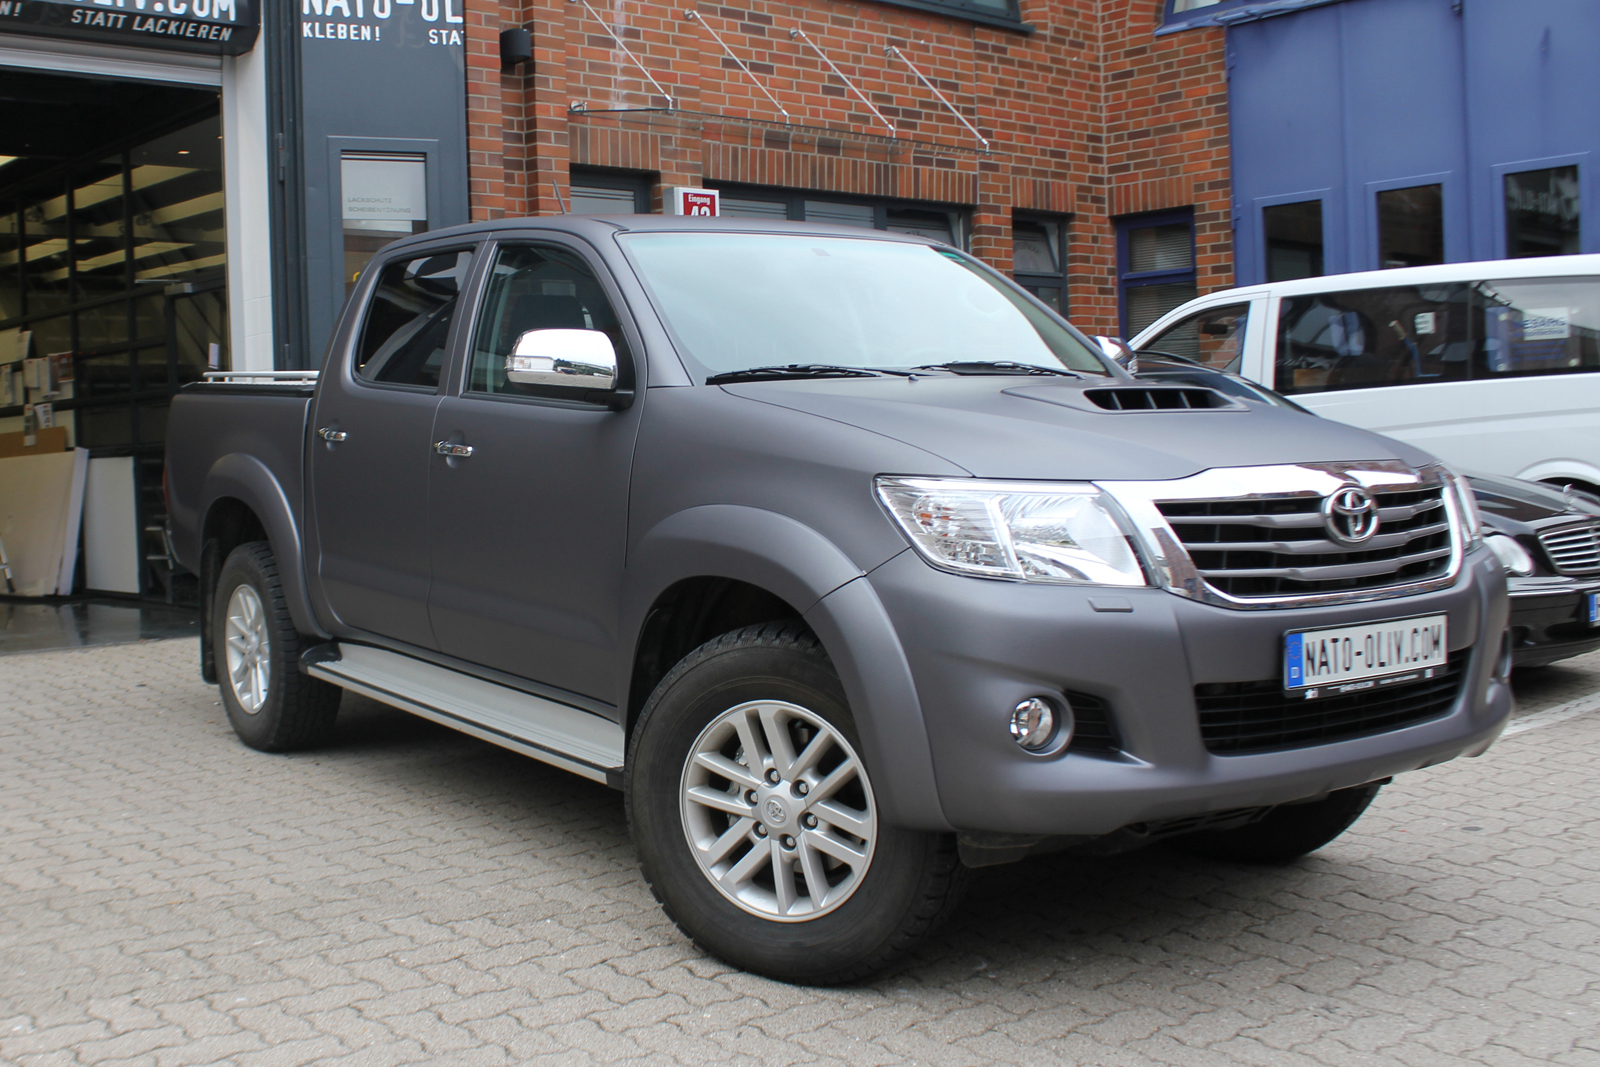 TOYOTA_HILUX_FOLIERUNG_ANTHRAZIT_METALLIC_MATT_07